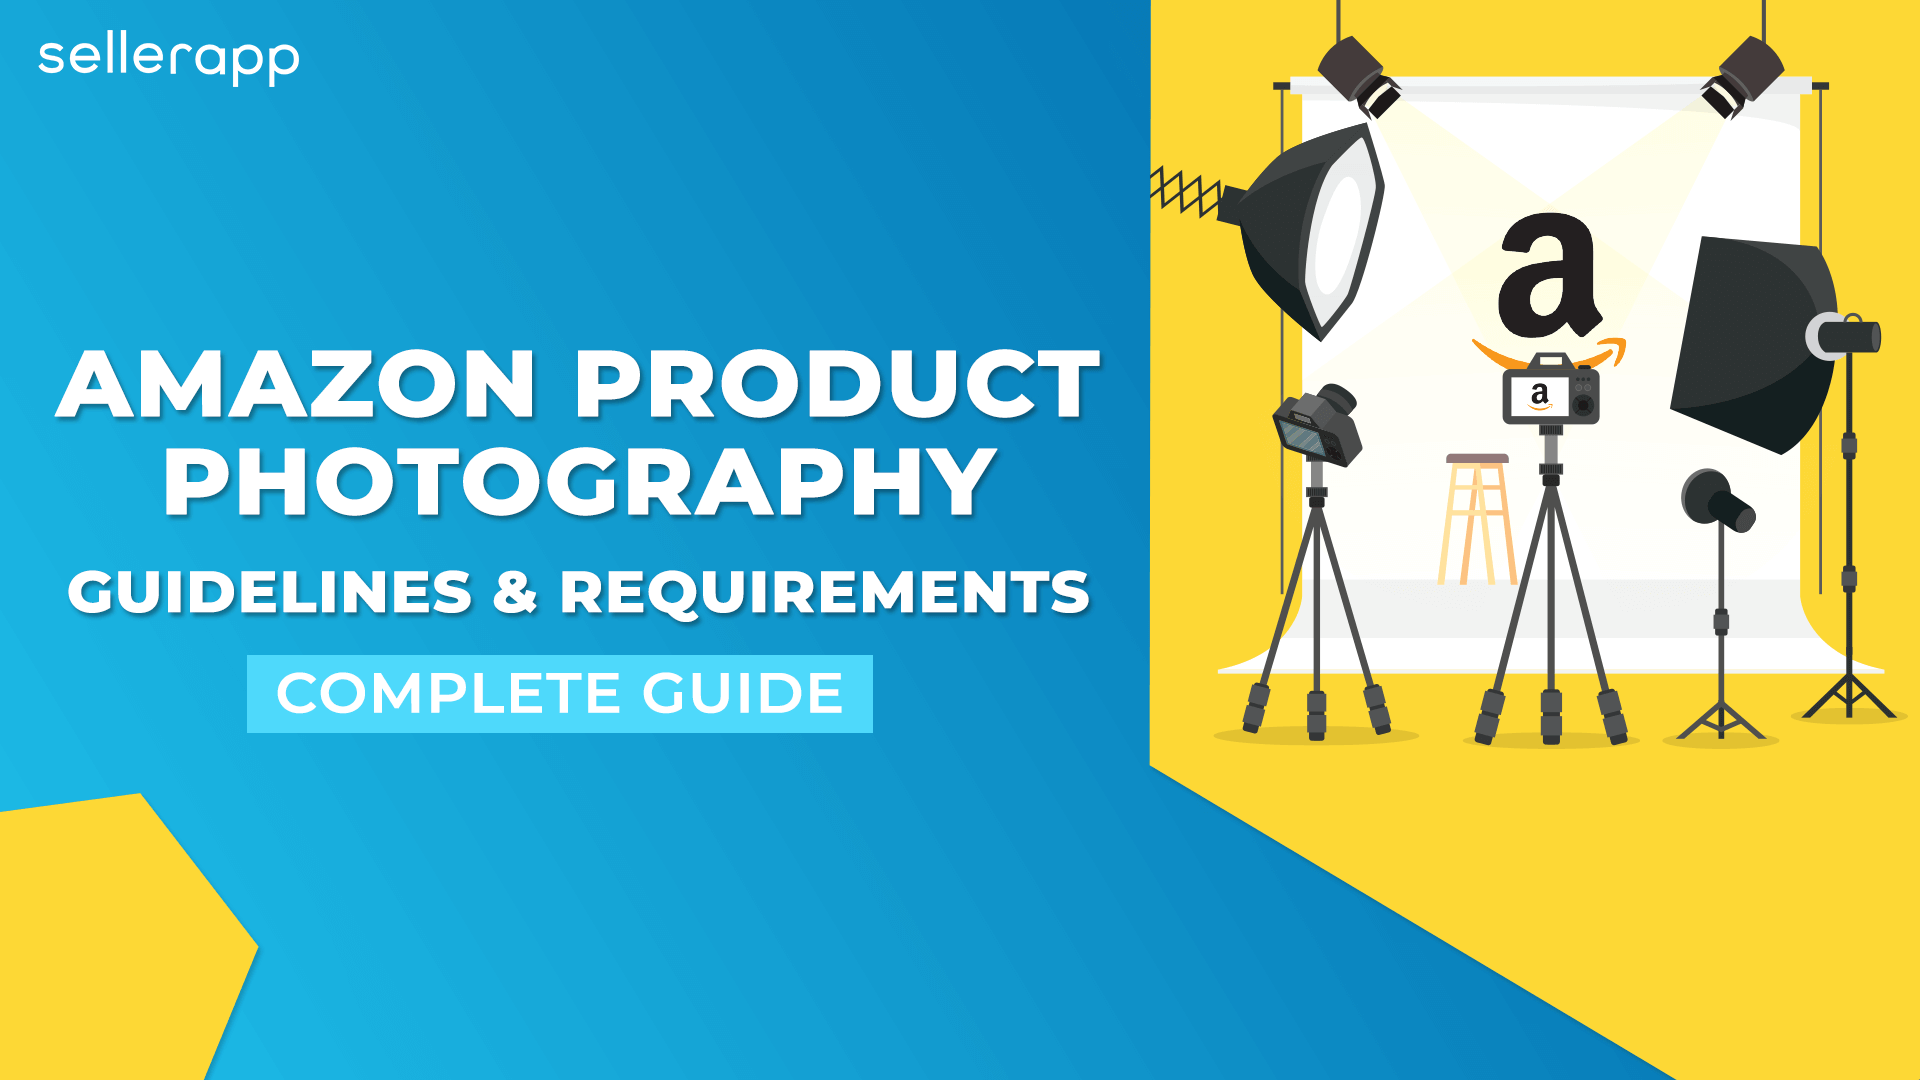 Amazon Product Photography 2020 Guide With Guidelines & Tips